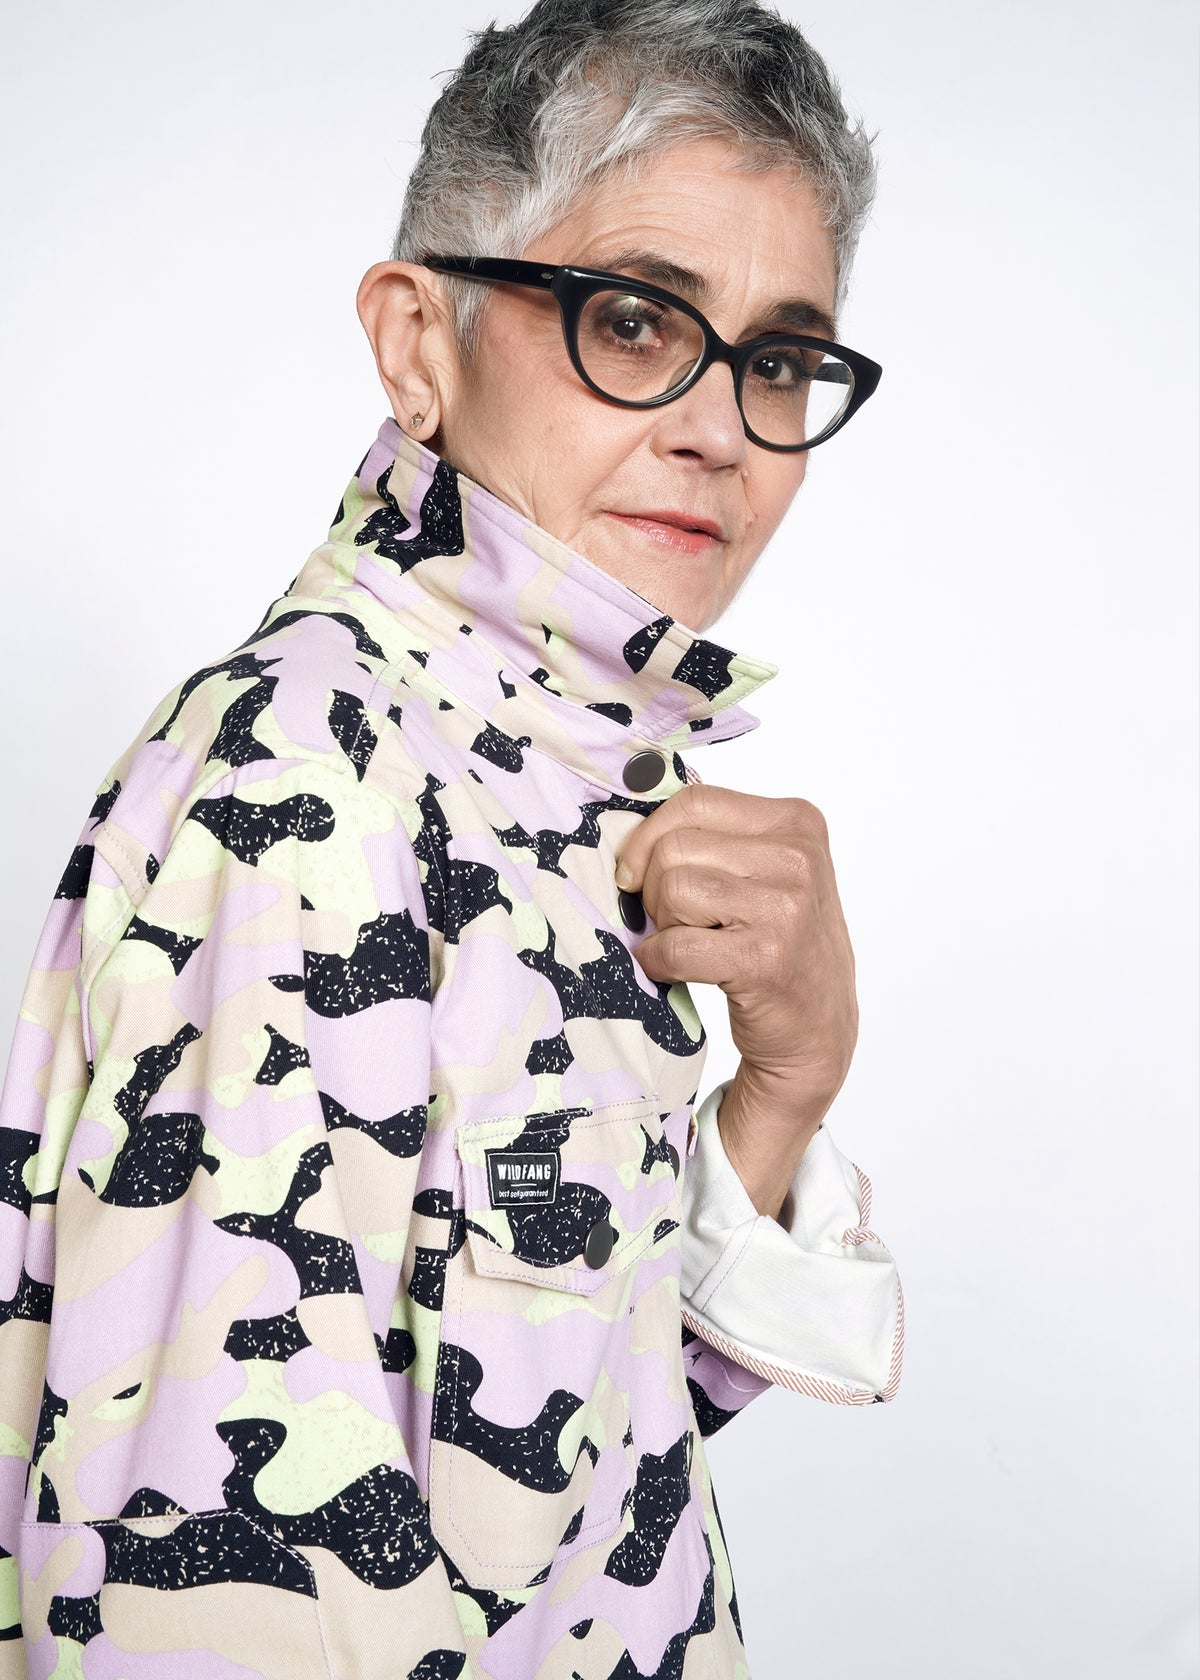 Model with gray short hair and glasses wears lavender, celadon, and black camouflage all over print shirt jacket (shacket) in size small